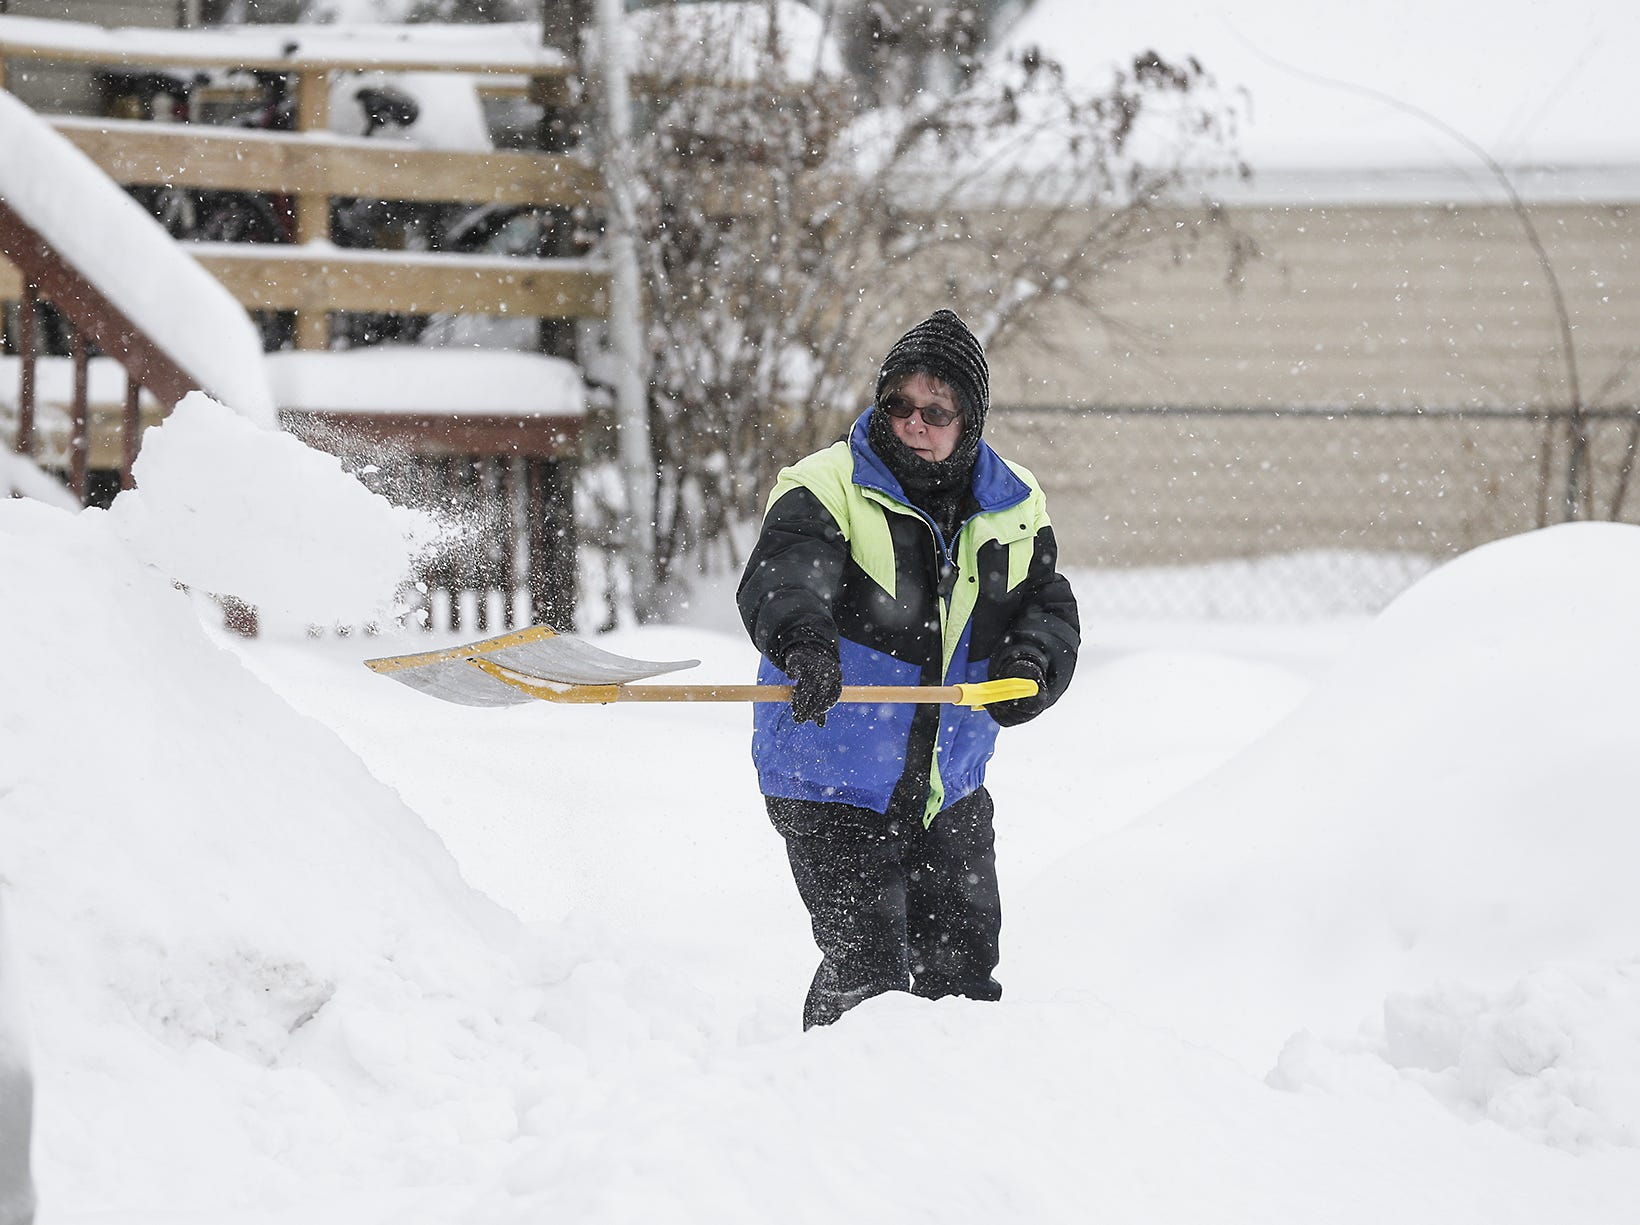 Sue Gerritson shovels out her driveway Monday, Jan. 28, 2019, on Seymour Street in Fond du Lac, Wisconsin during a snow storm that hampered travel and closed businesses and schools in the Fond du Lac area. This was the Fond du Lac area's second snow storm in five days.